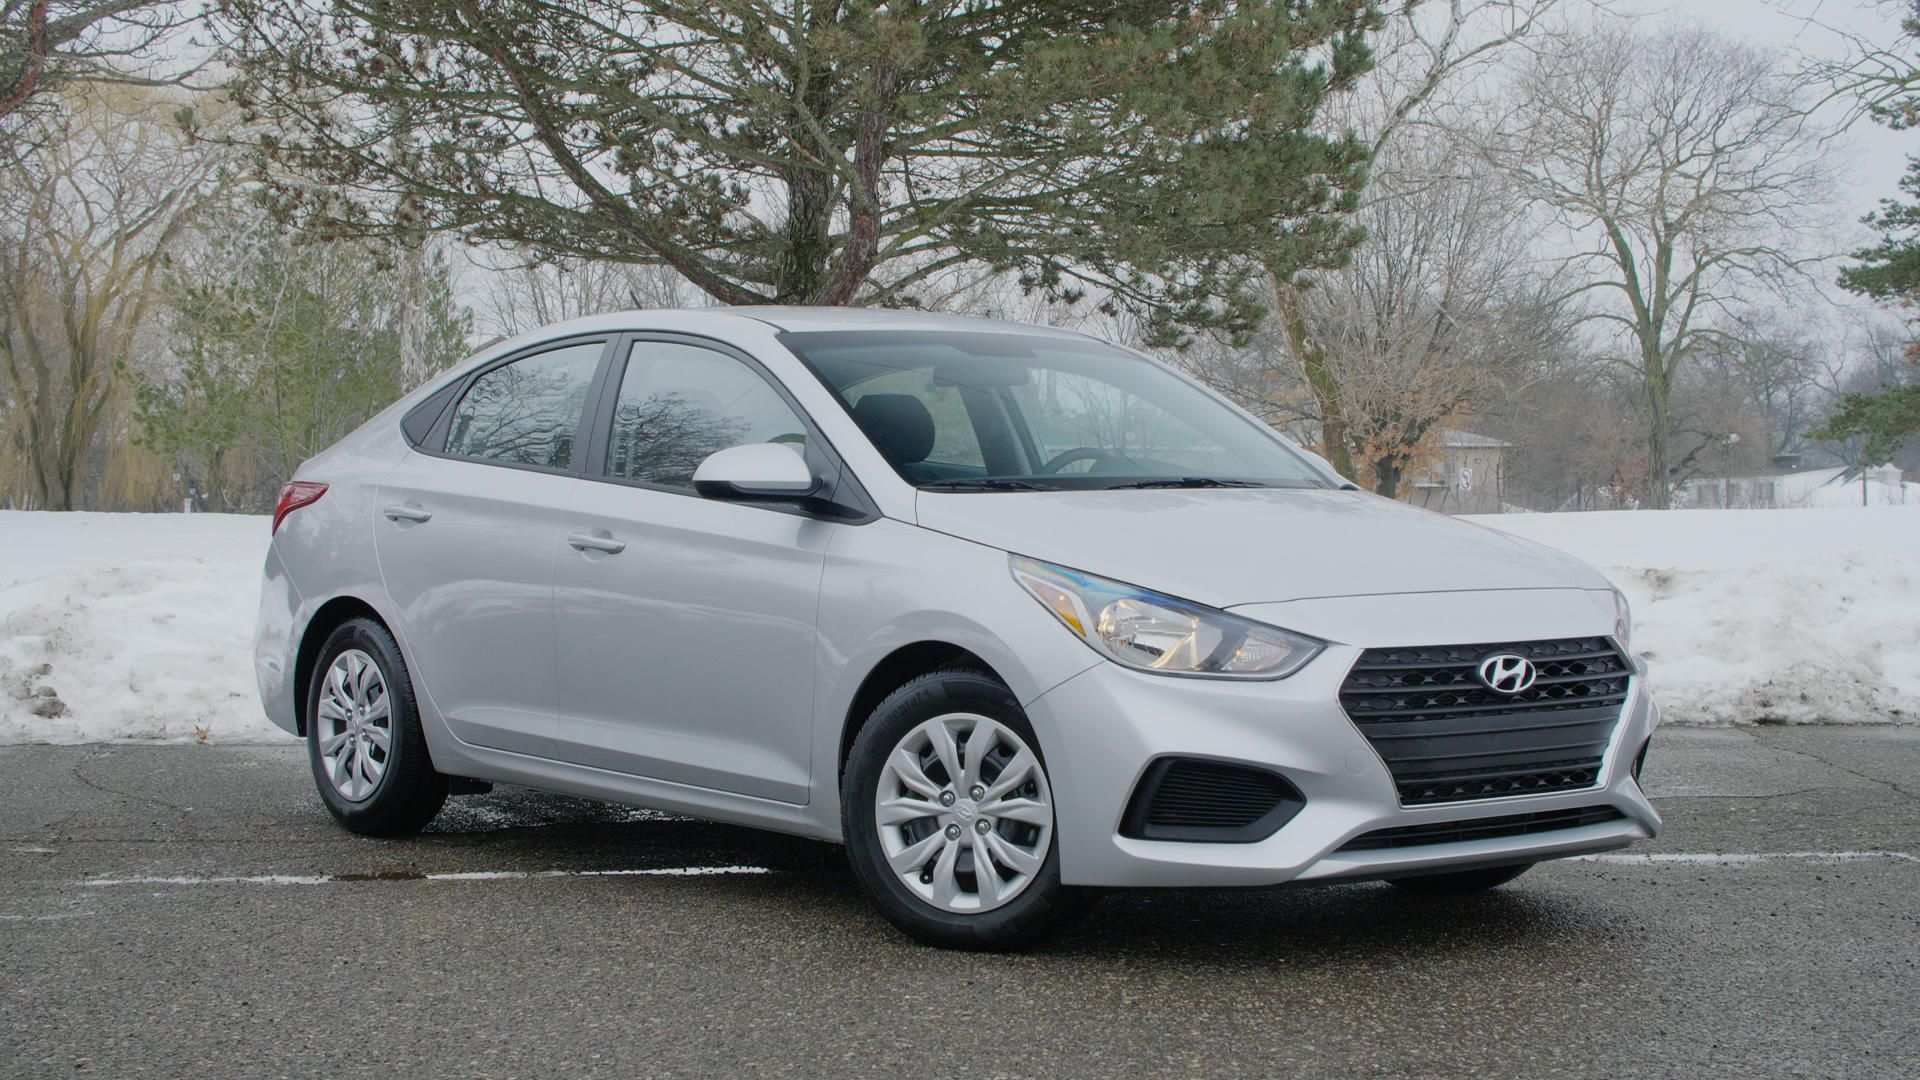 79 All New Hyundai Accent 2020 Redesign